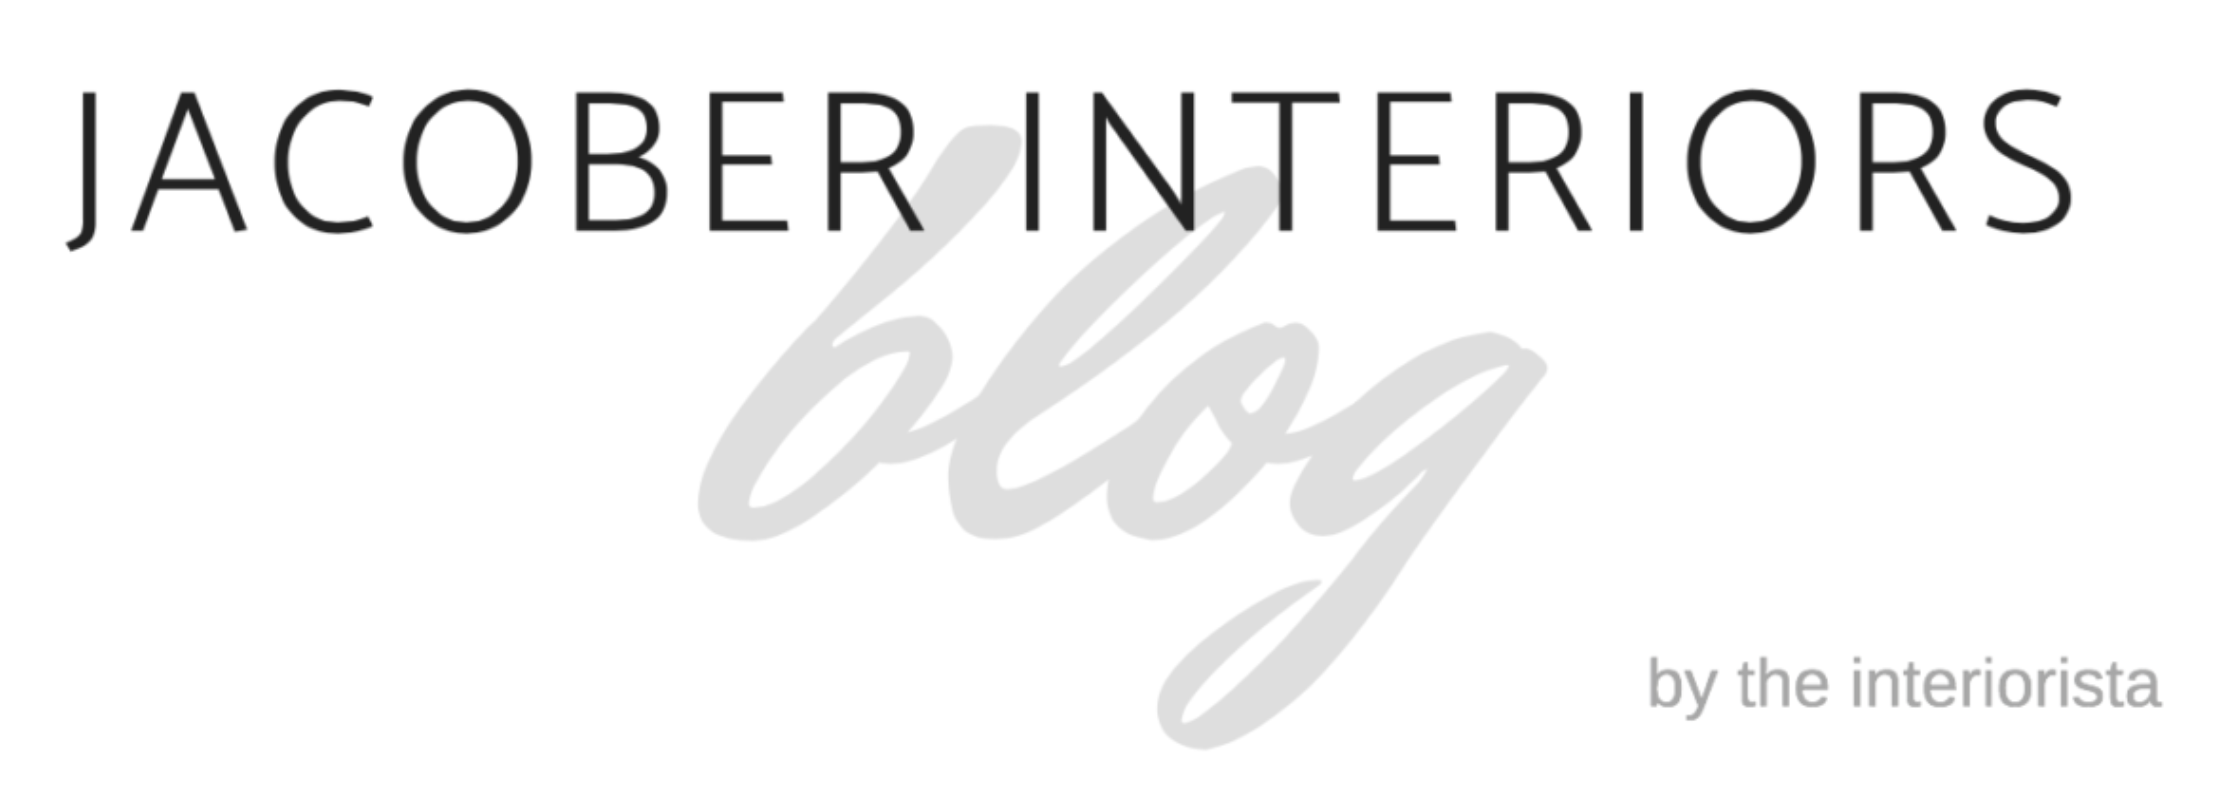 Jacober Interiors Blog